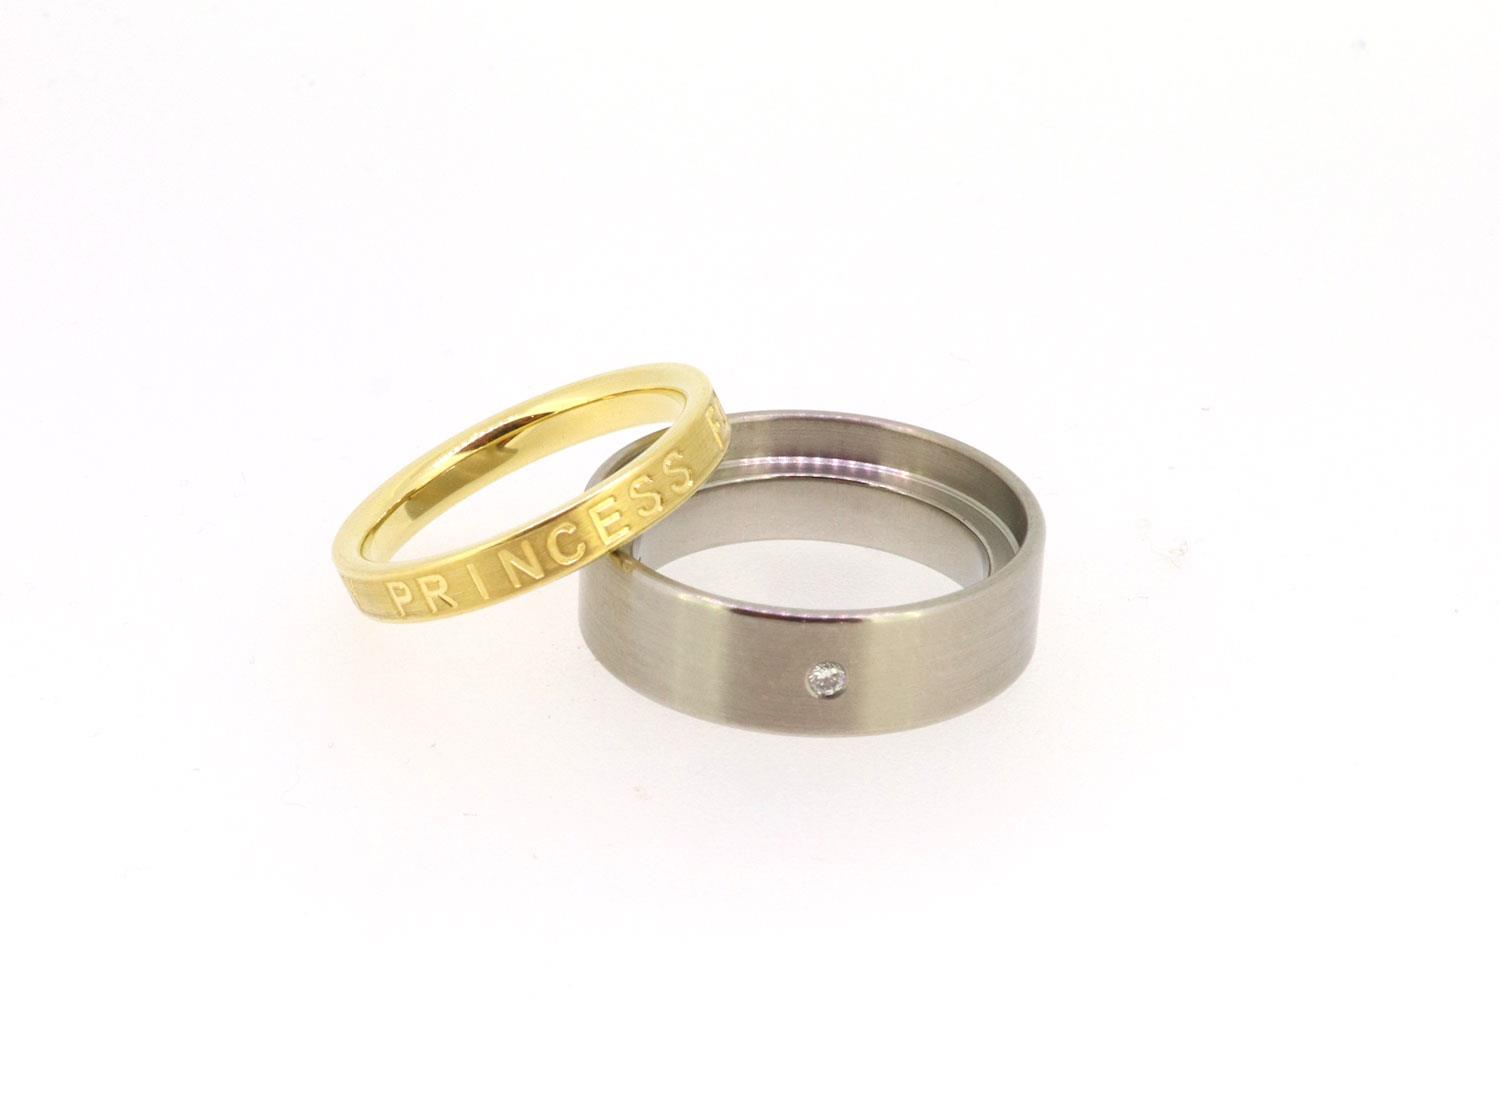 Ring 0,02ct Twinset 18ct Gelbgold Titan - Meister - 12.8755.00